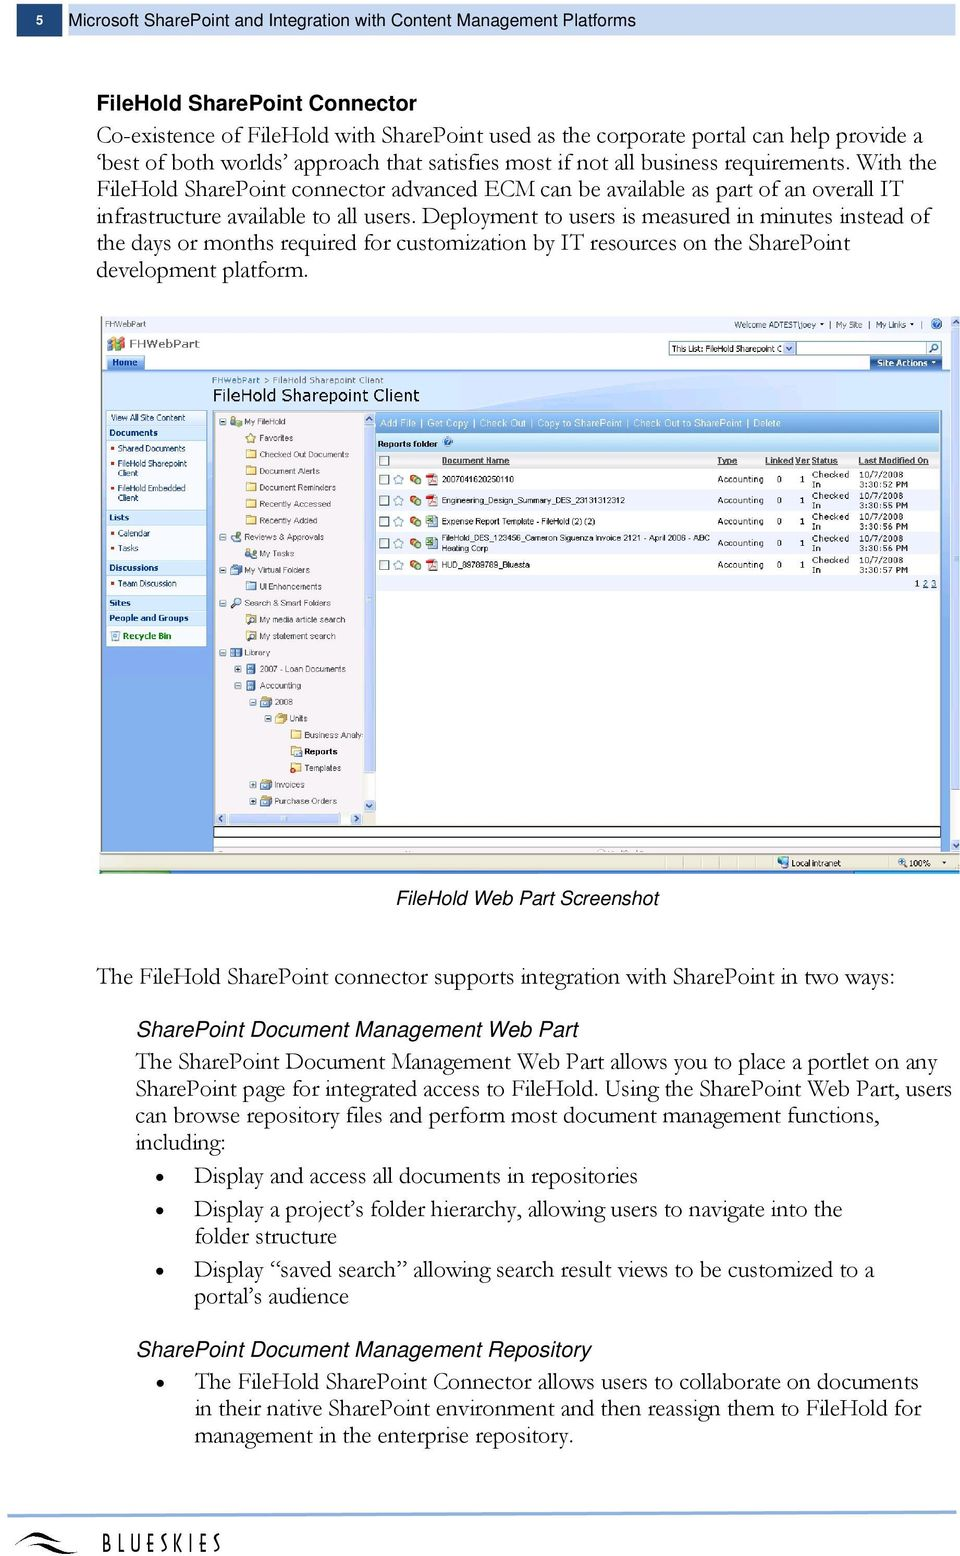 With the FileHold SharePoint connector advanced ECM can be available as part of an overall IT infrastructure available to all users.